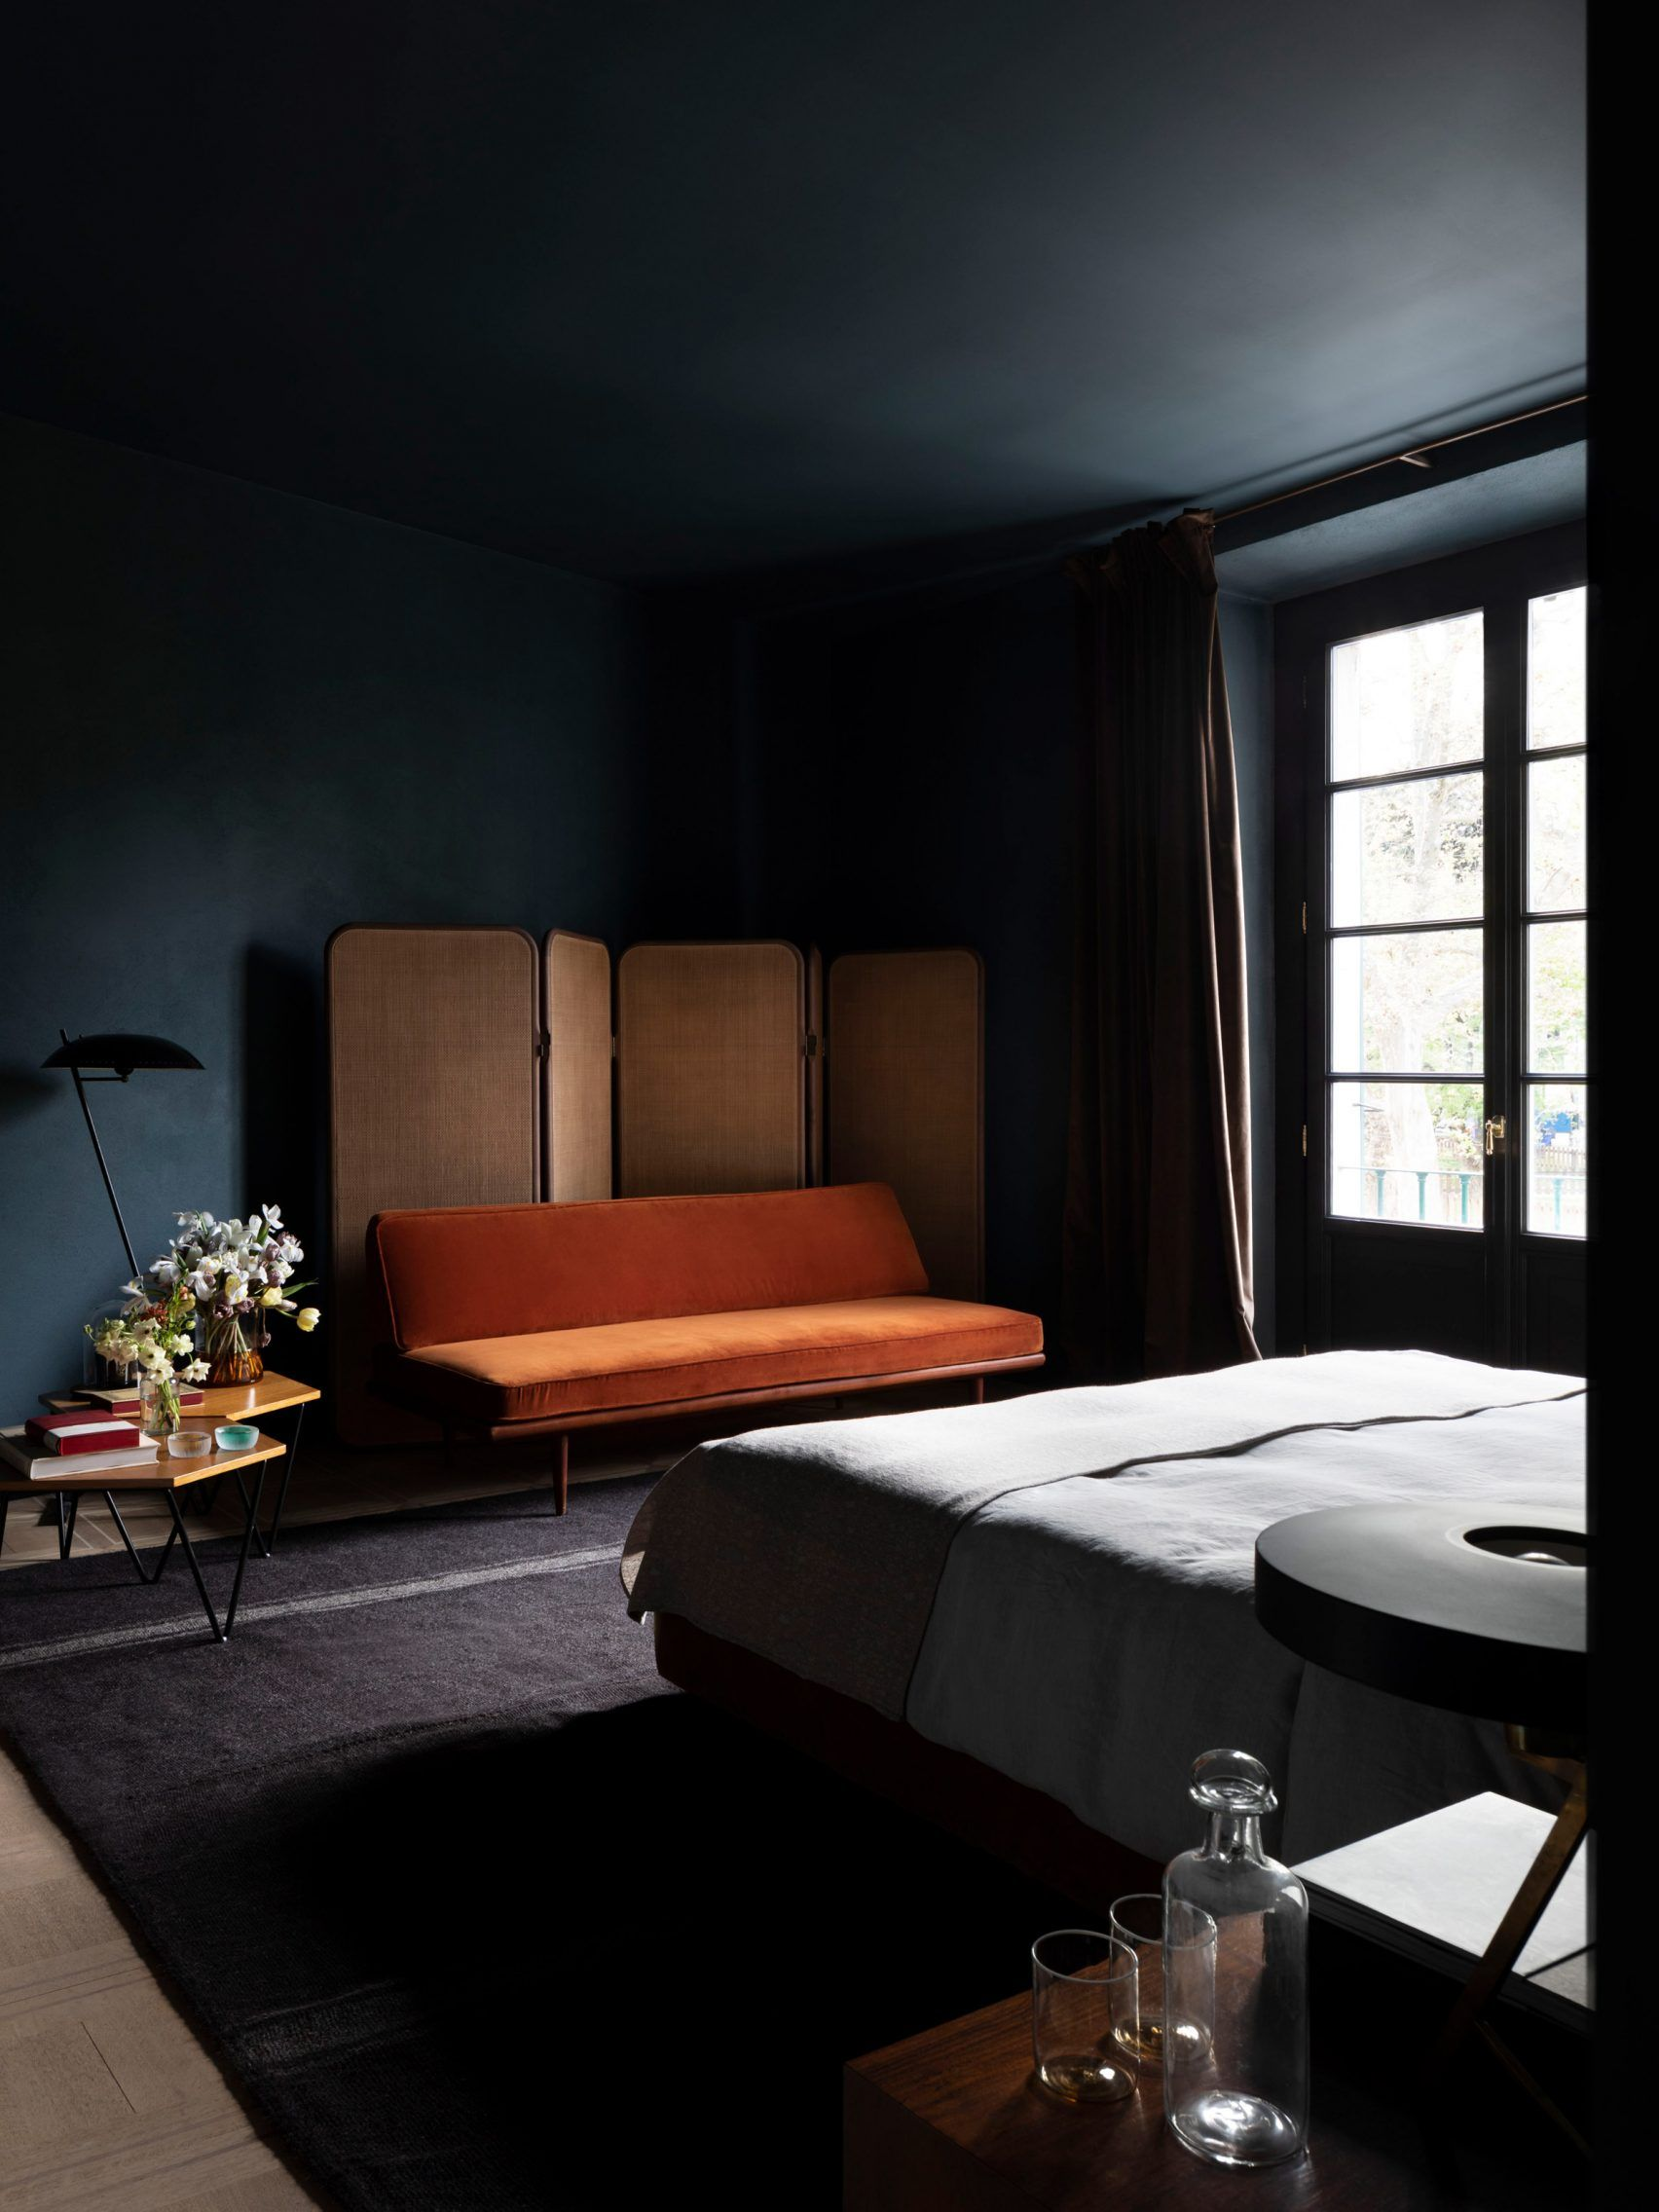 The Sister Hotel In Milan Sits Inside An Ancient Convent With